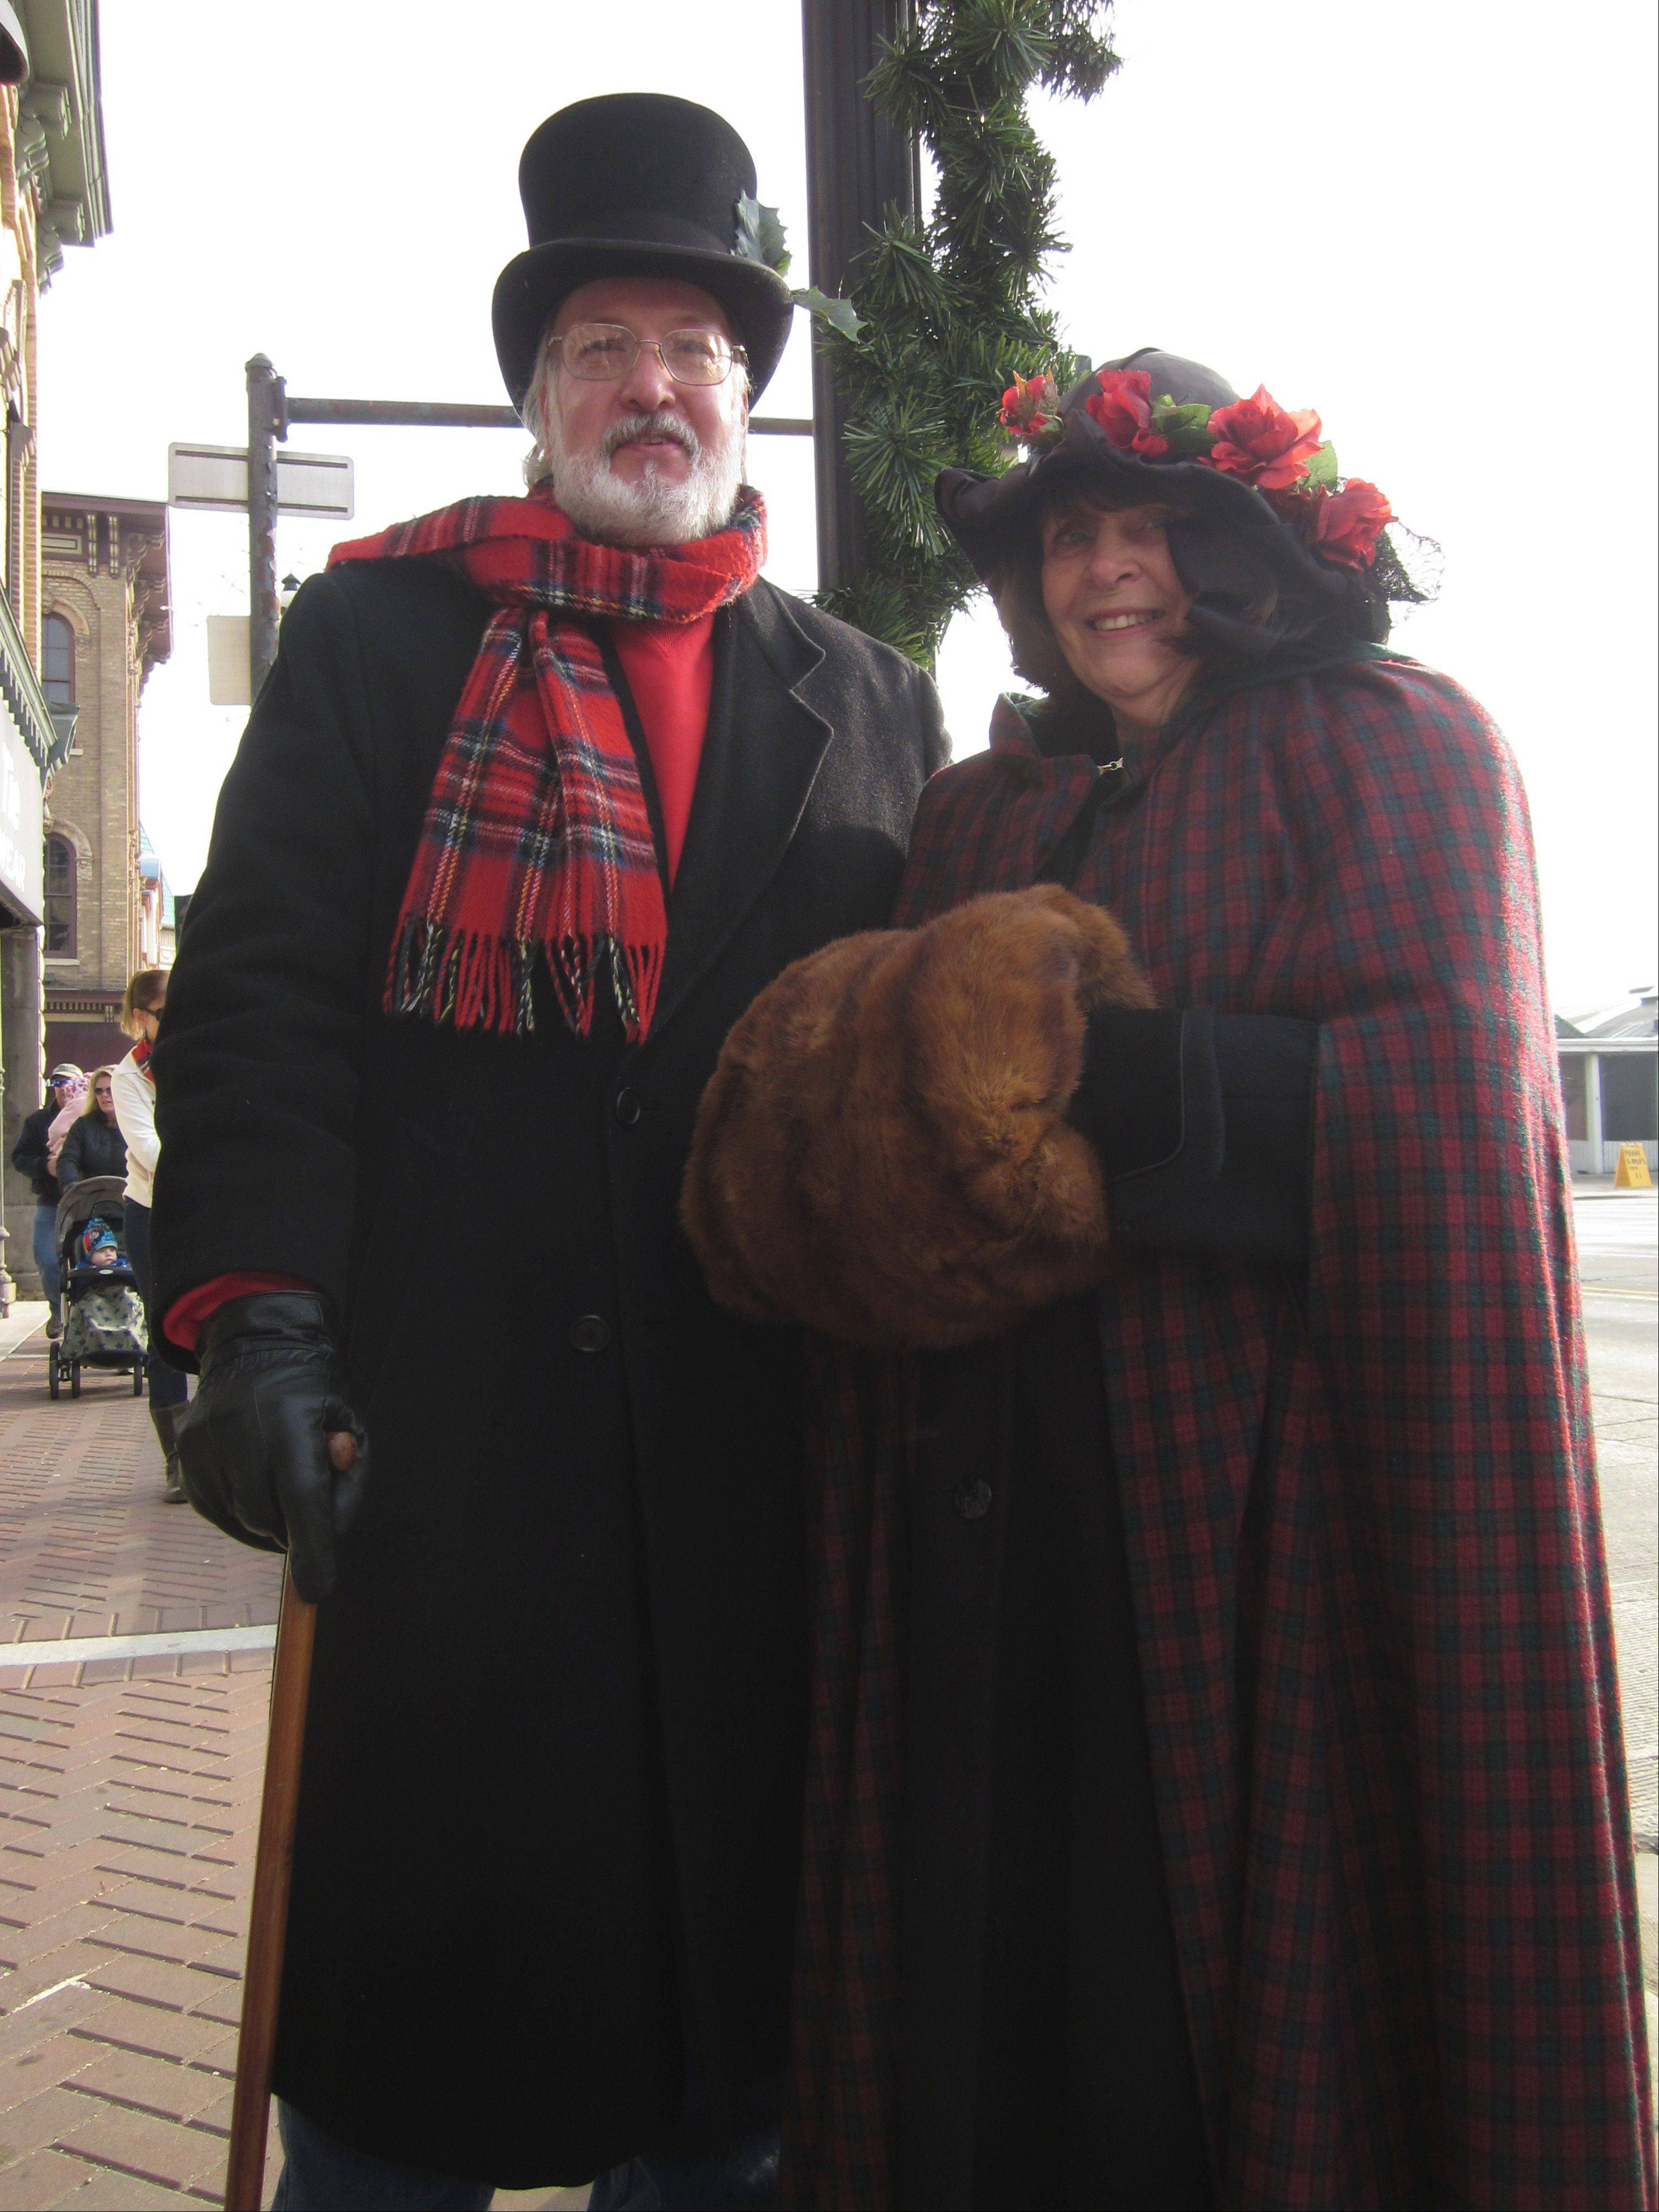 Mike and Ginny Buhrmann came dressed in period costumes for last year's Dickens in Dundee Spirit of Christmas parade.